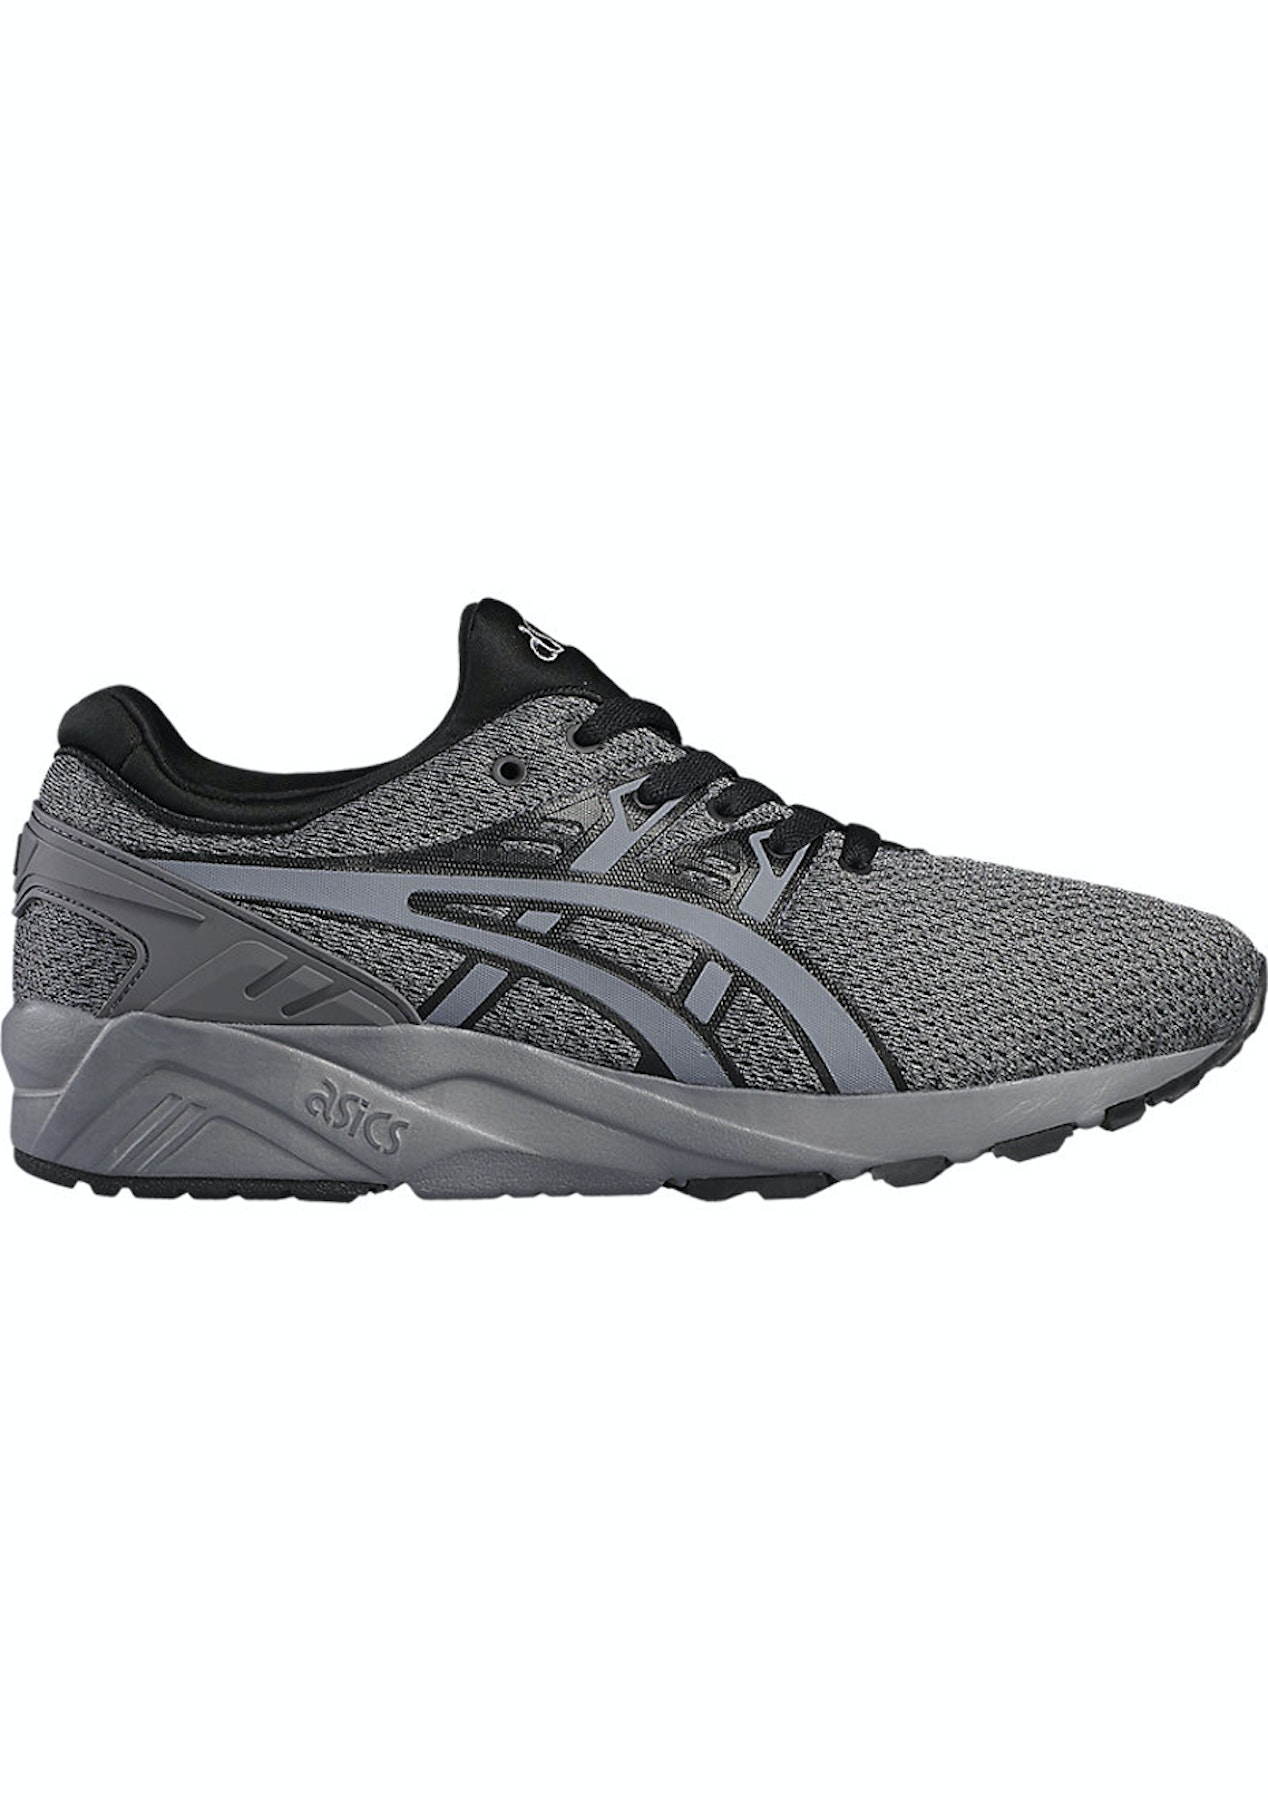 meet 4c20c 70c42 Asics Tiger - Kayano Trainer Evo Mens - Carbon/Carbon